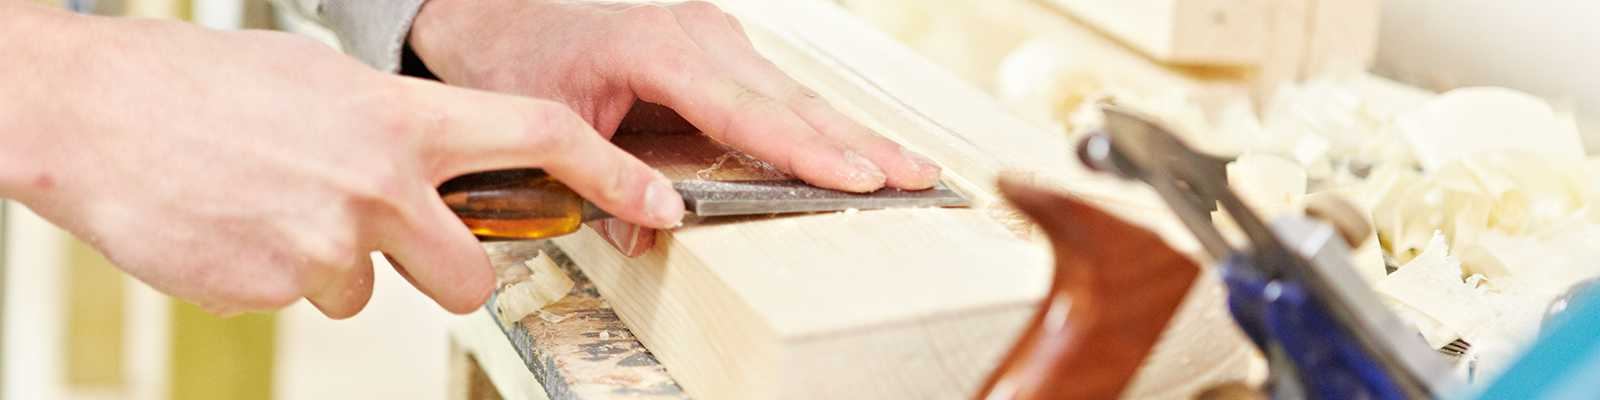 City & Guilds Carpentry Course